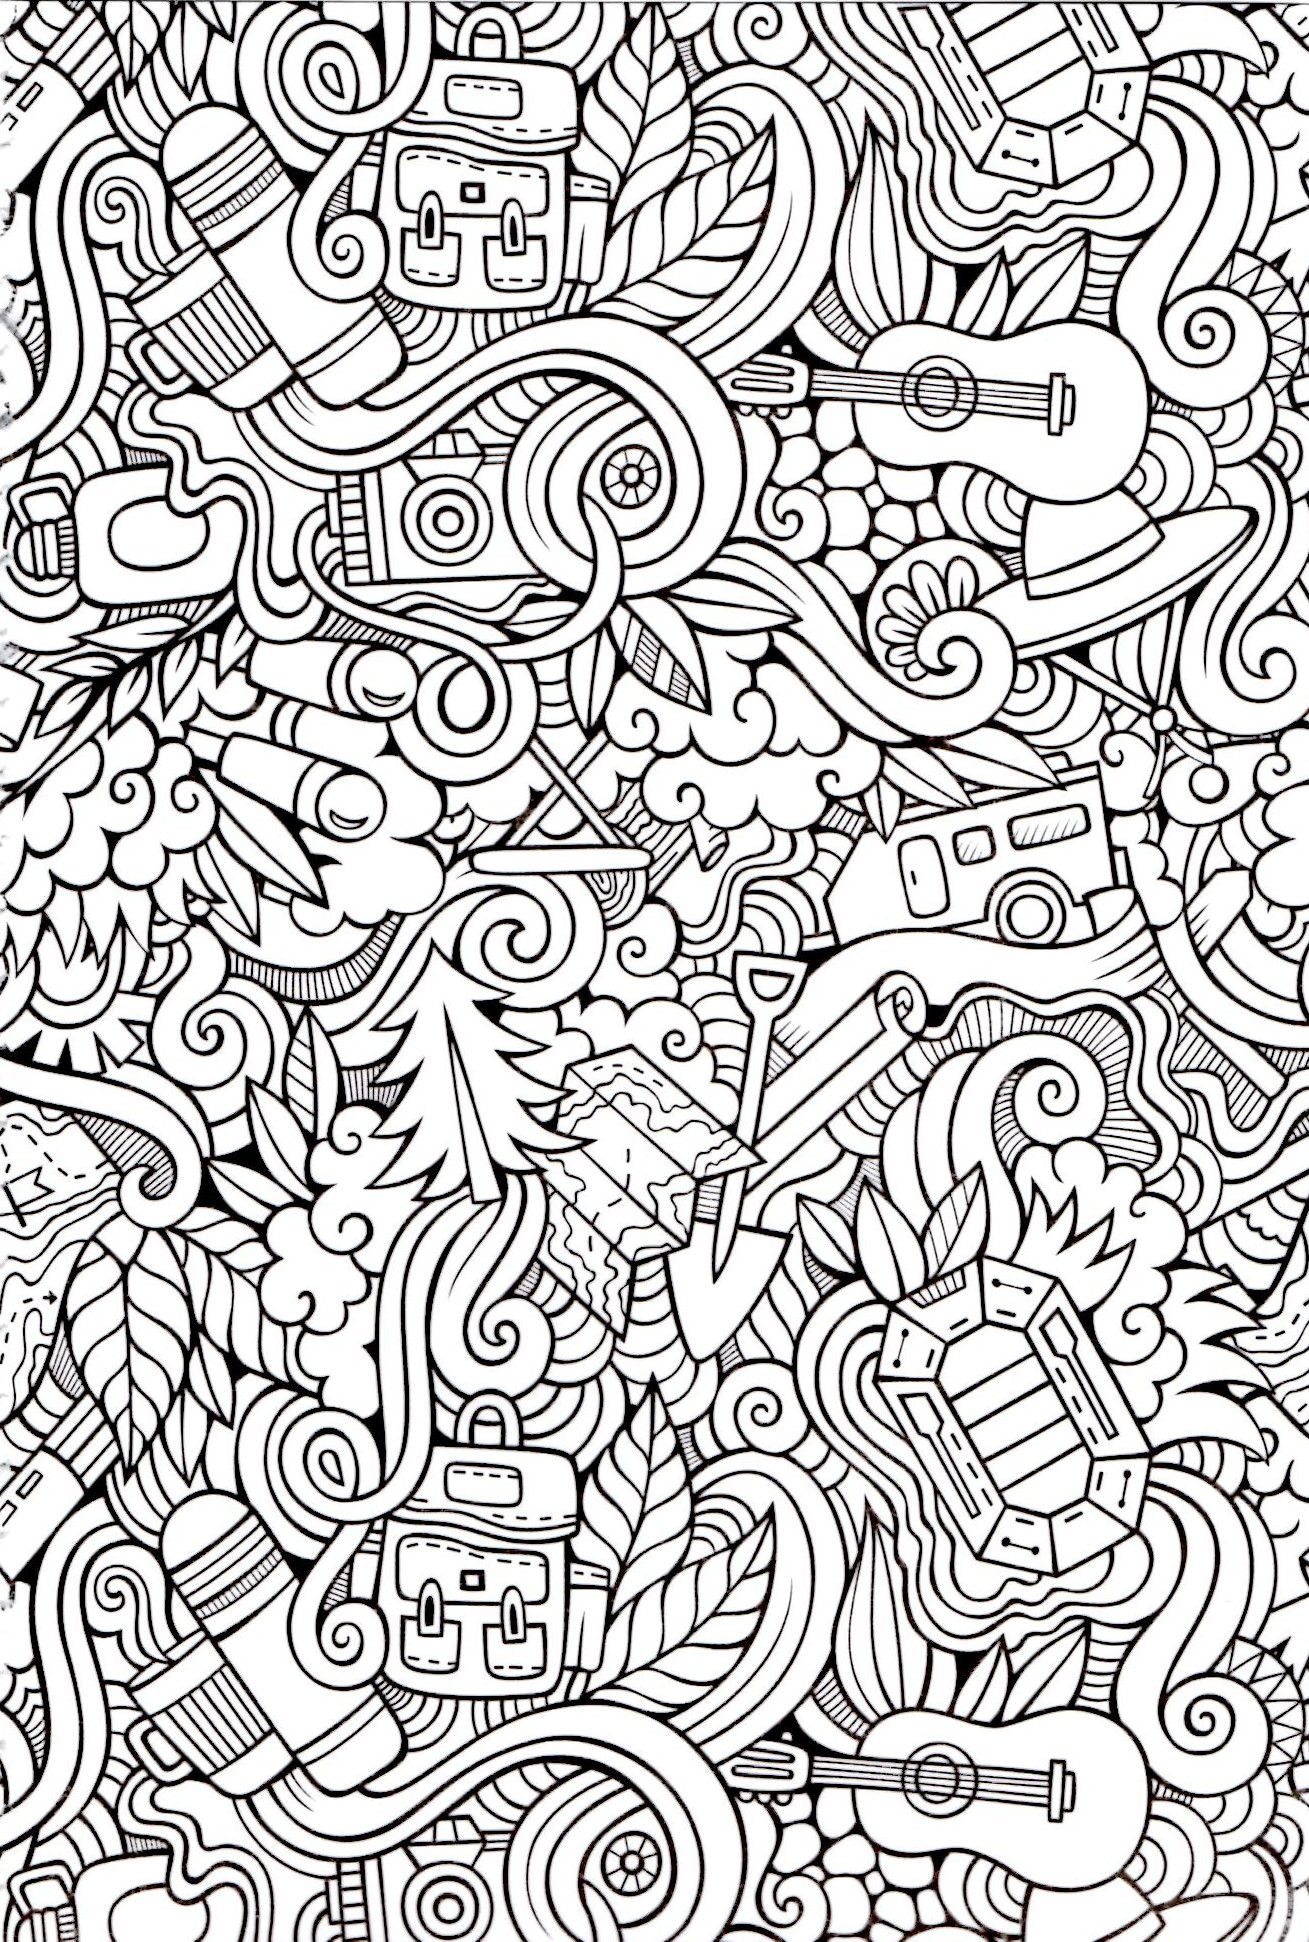 Camping Time Coloring Page | Coloring Pages for Adults | Pinterest ...